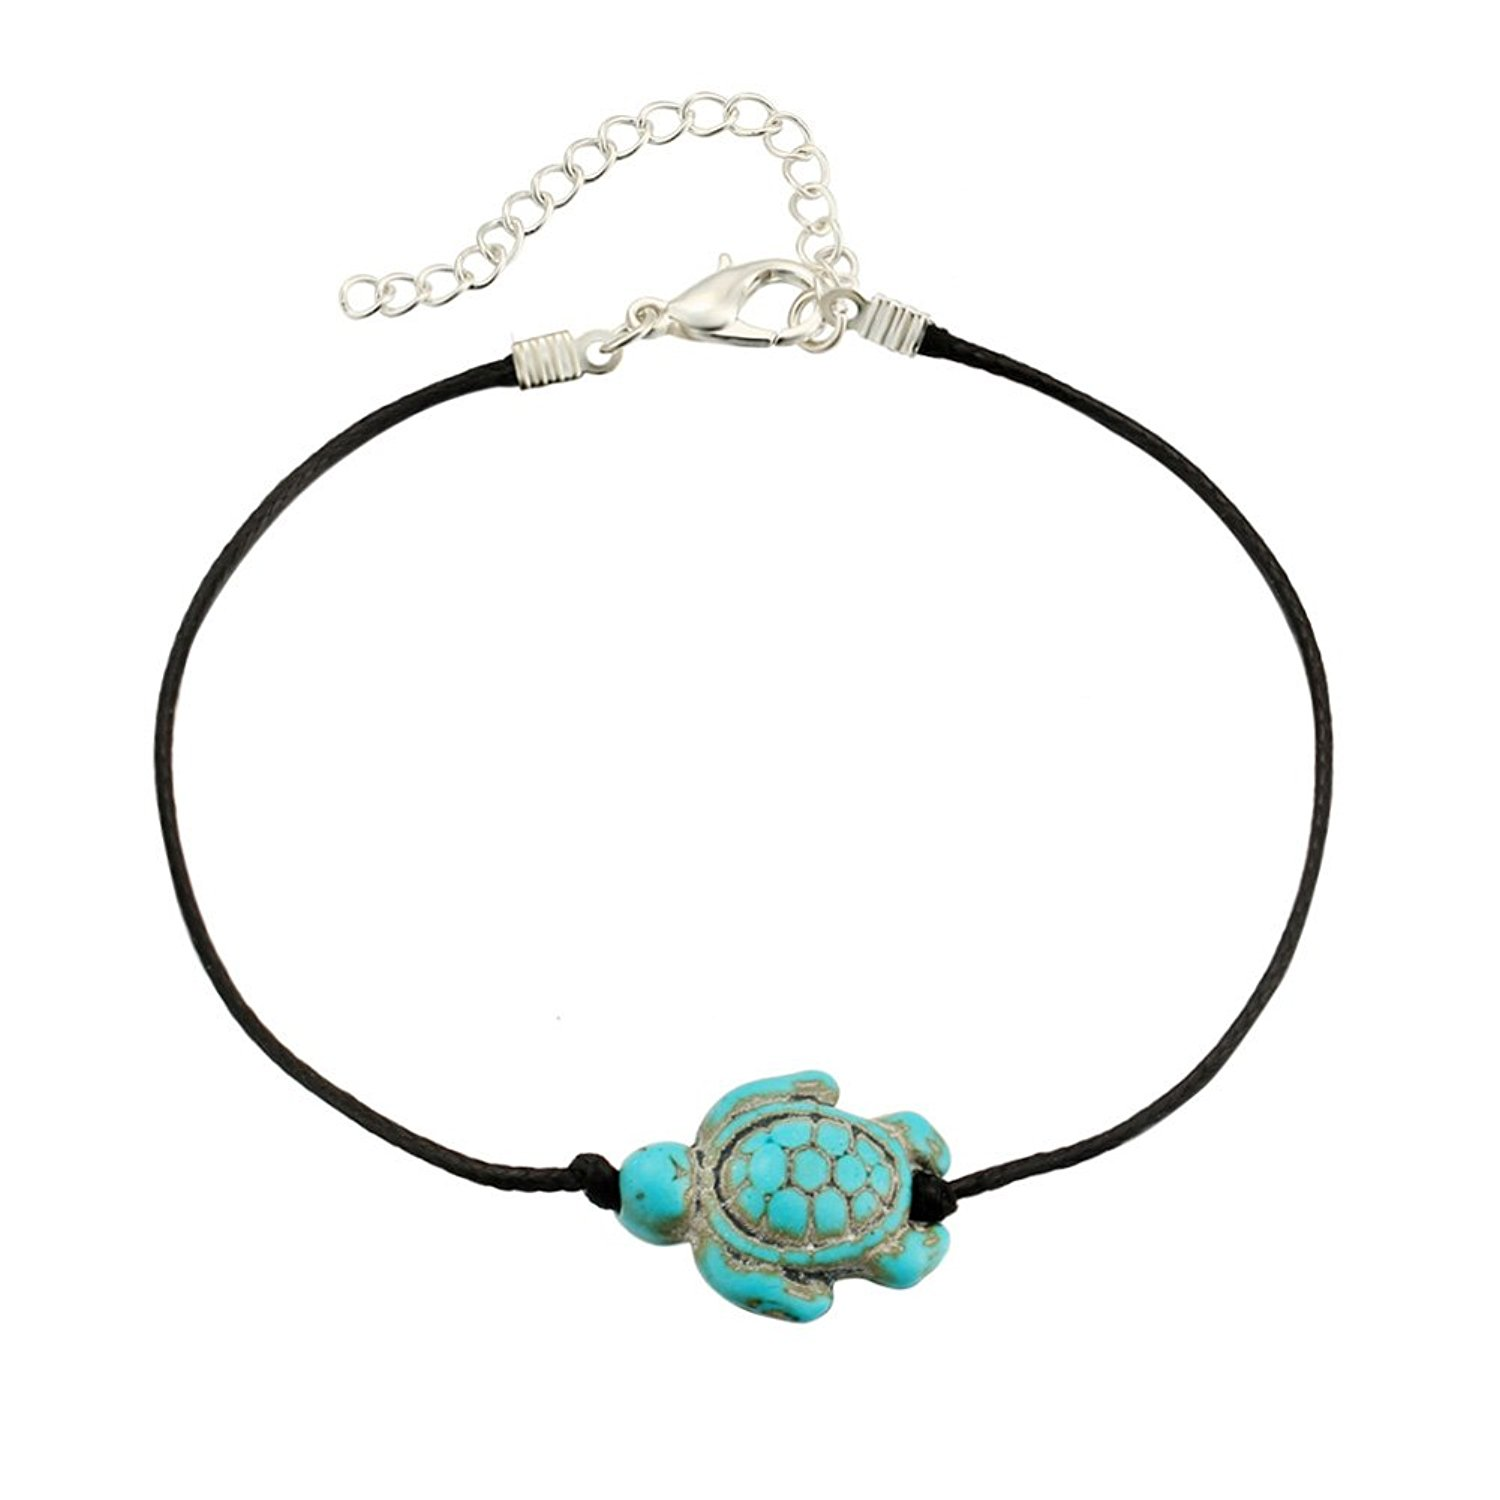 PORPI-JOJO Sea turtle Anklet Bracelet for Women Beach Animal Anklets Leather Chain Foot Jewelry